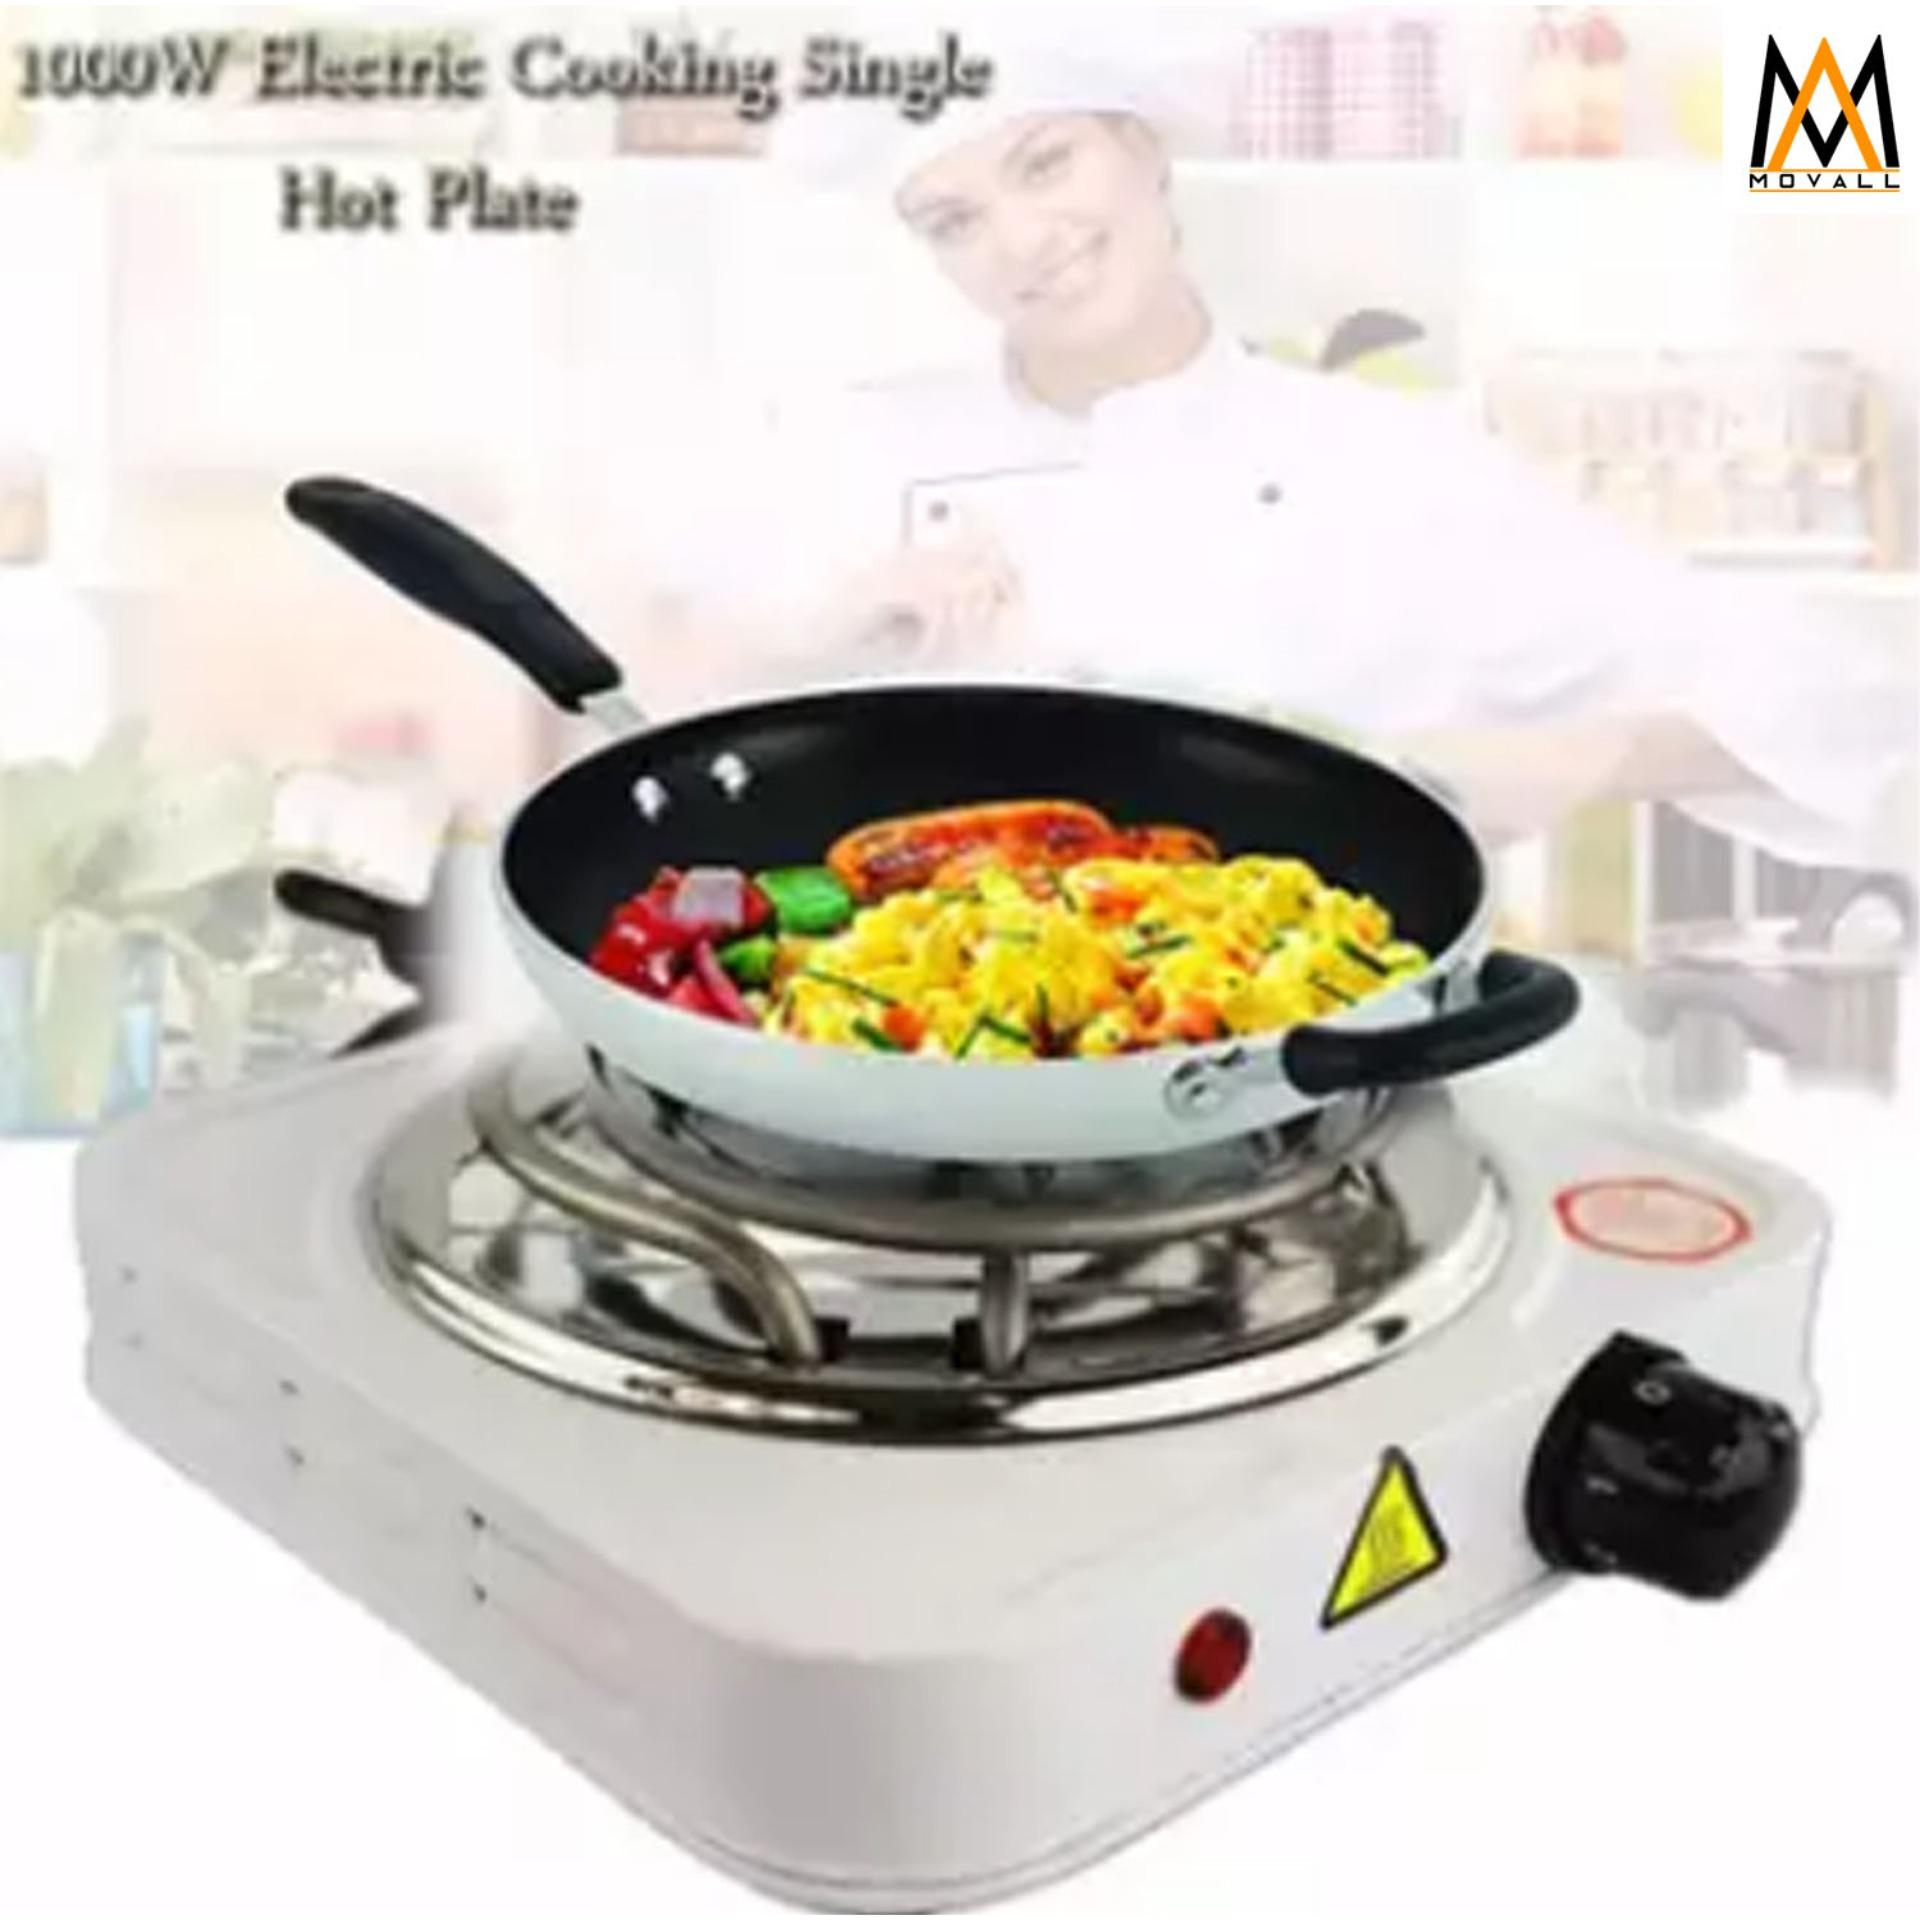 Portable Electric Stove Single Burner 1000W Hot Plate JX1010B (White) image on snachetto.com